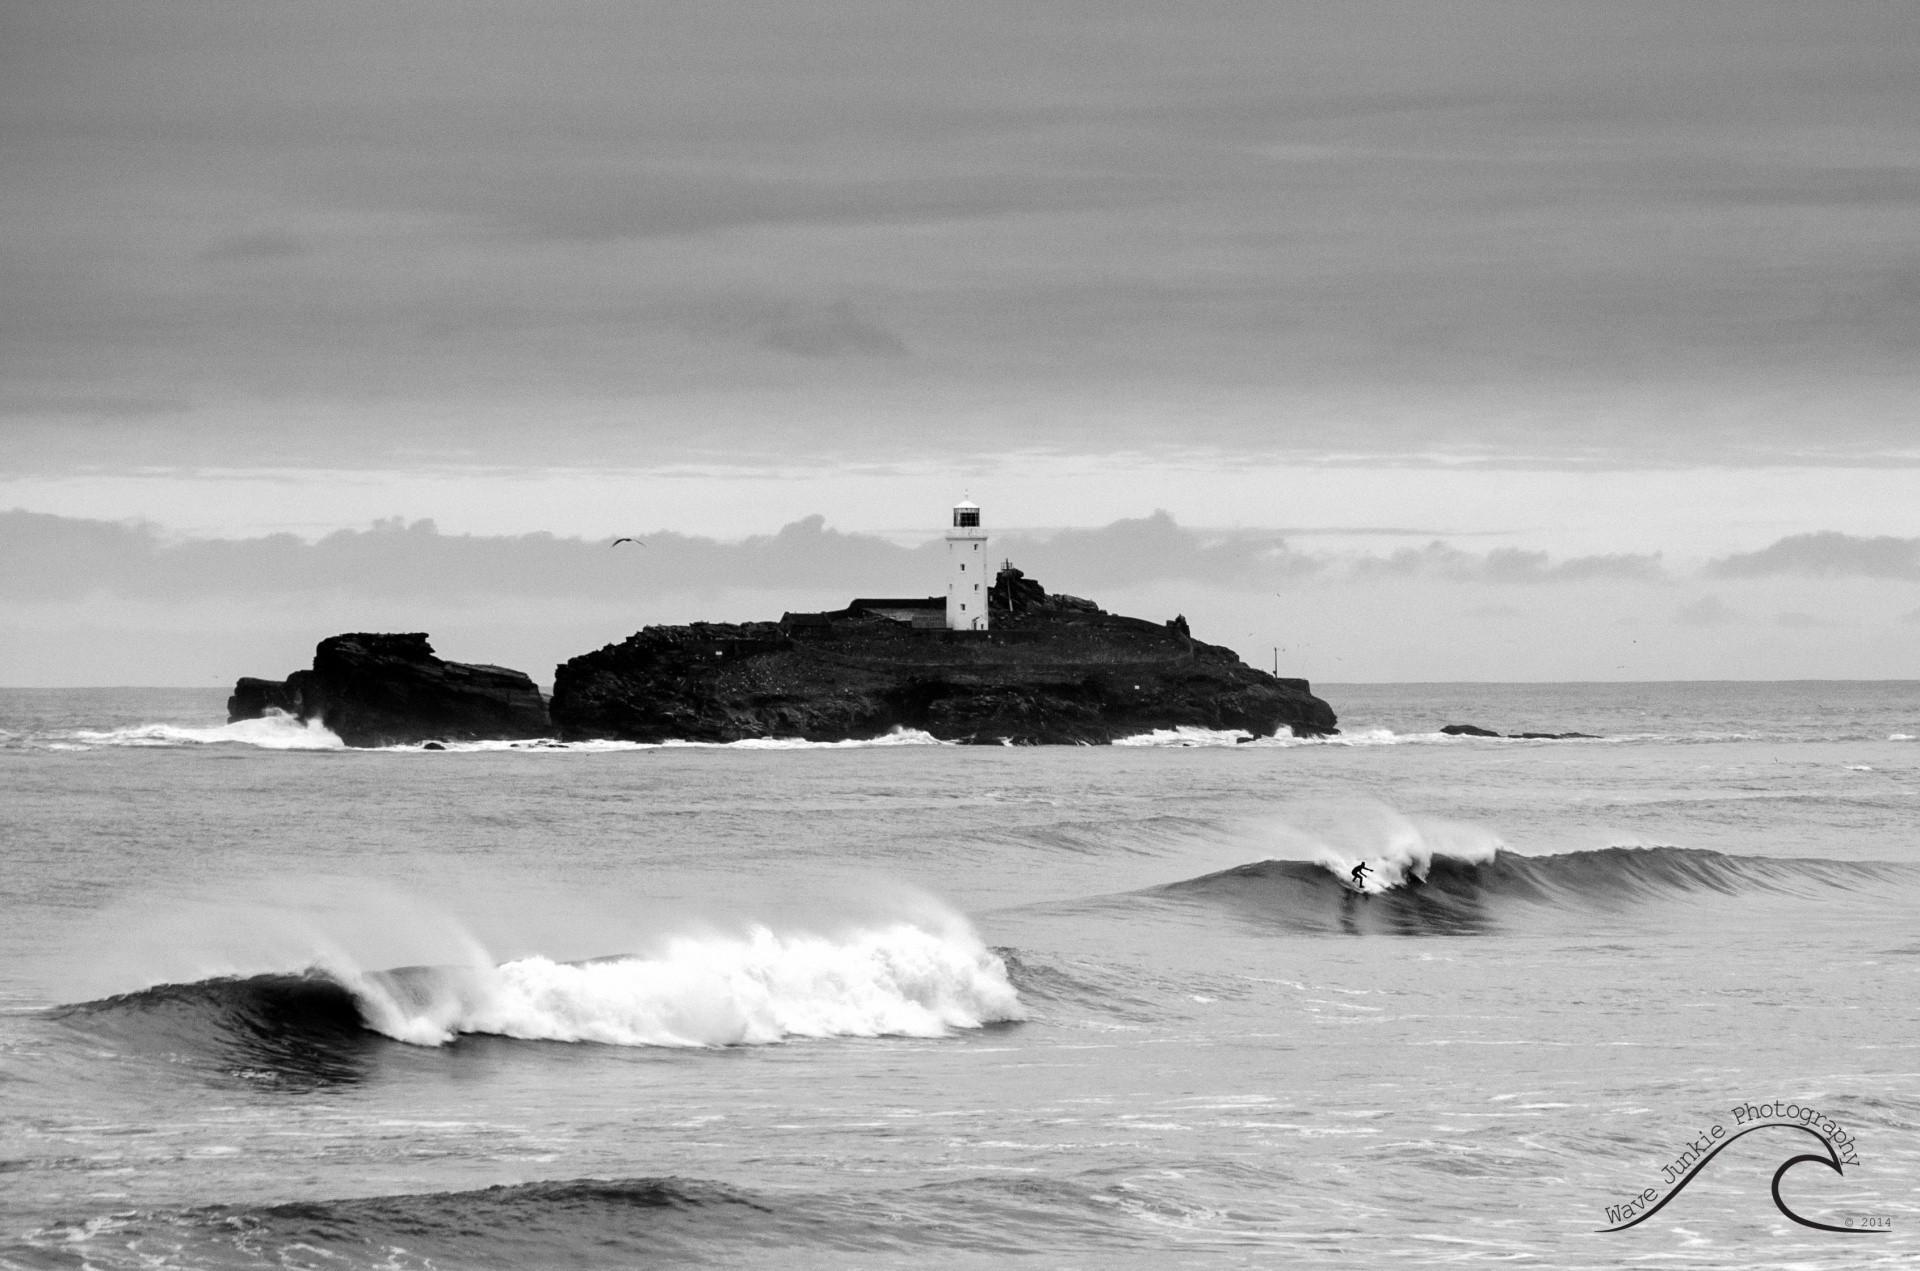 Matthew Loots's photo of Godrevy